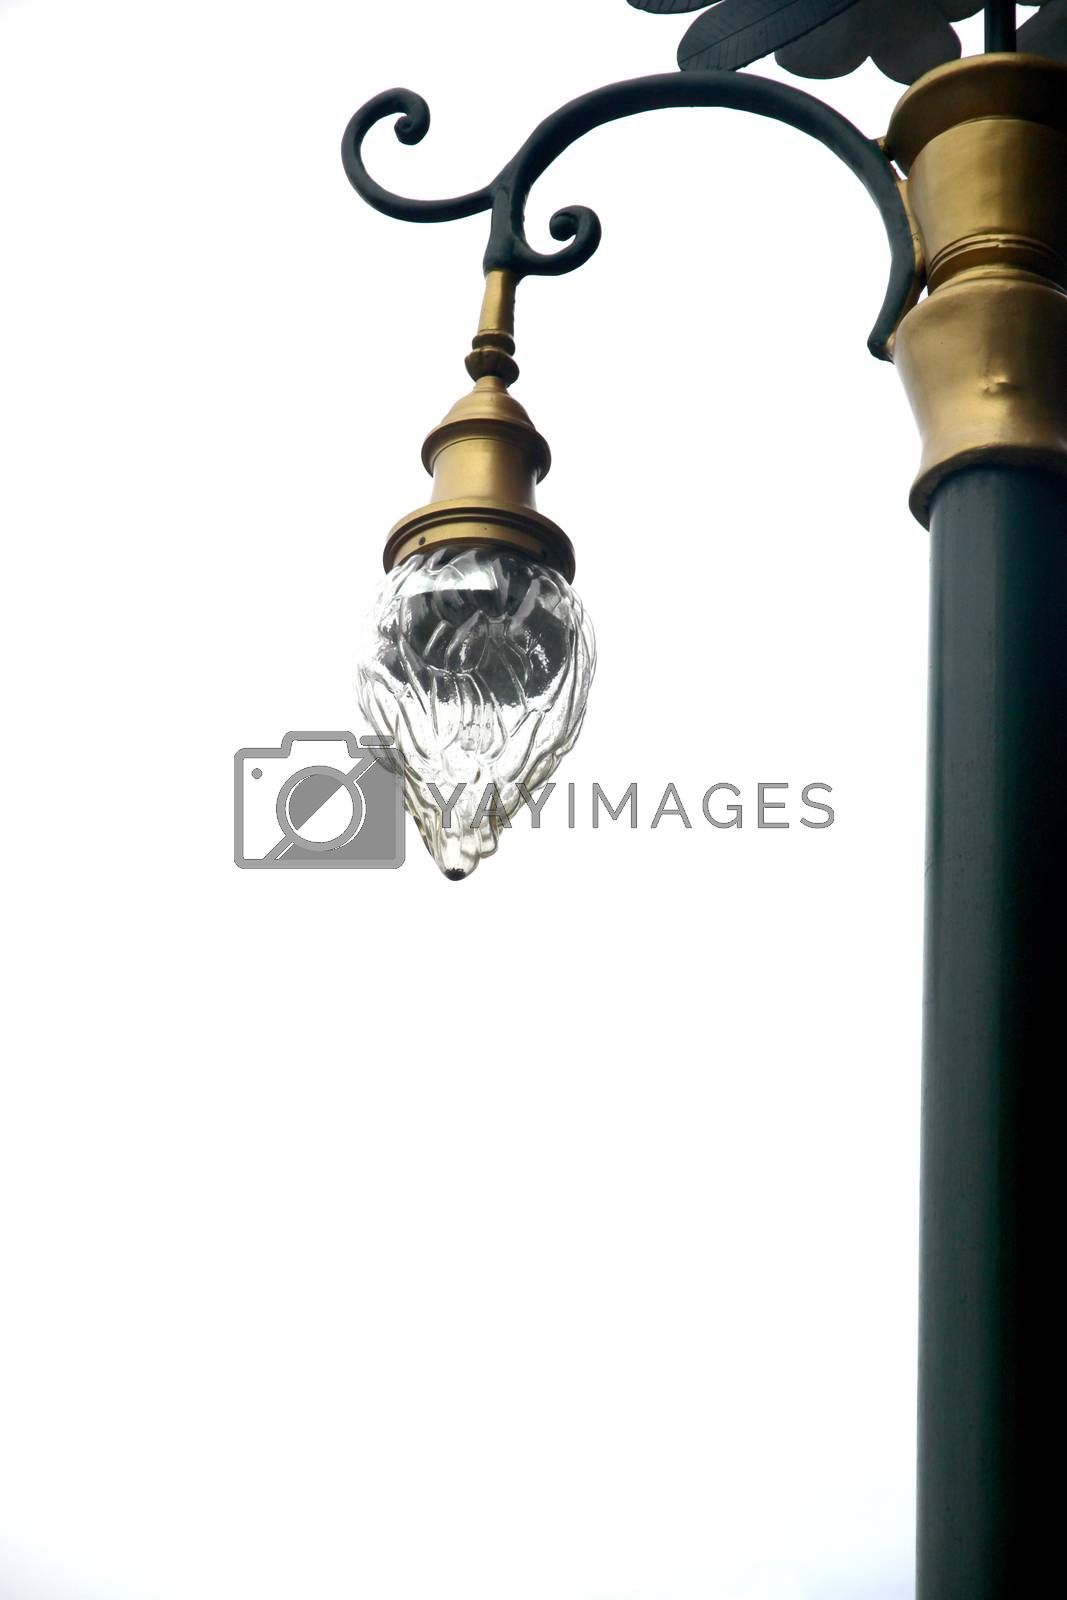 The Picture Street lamp on white background.